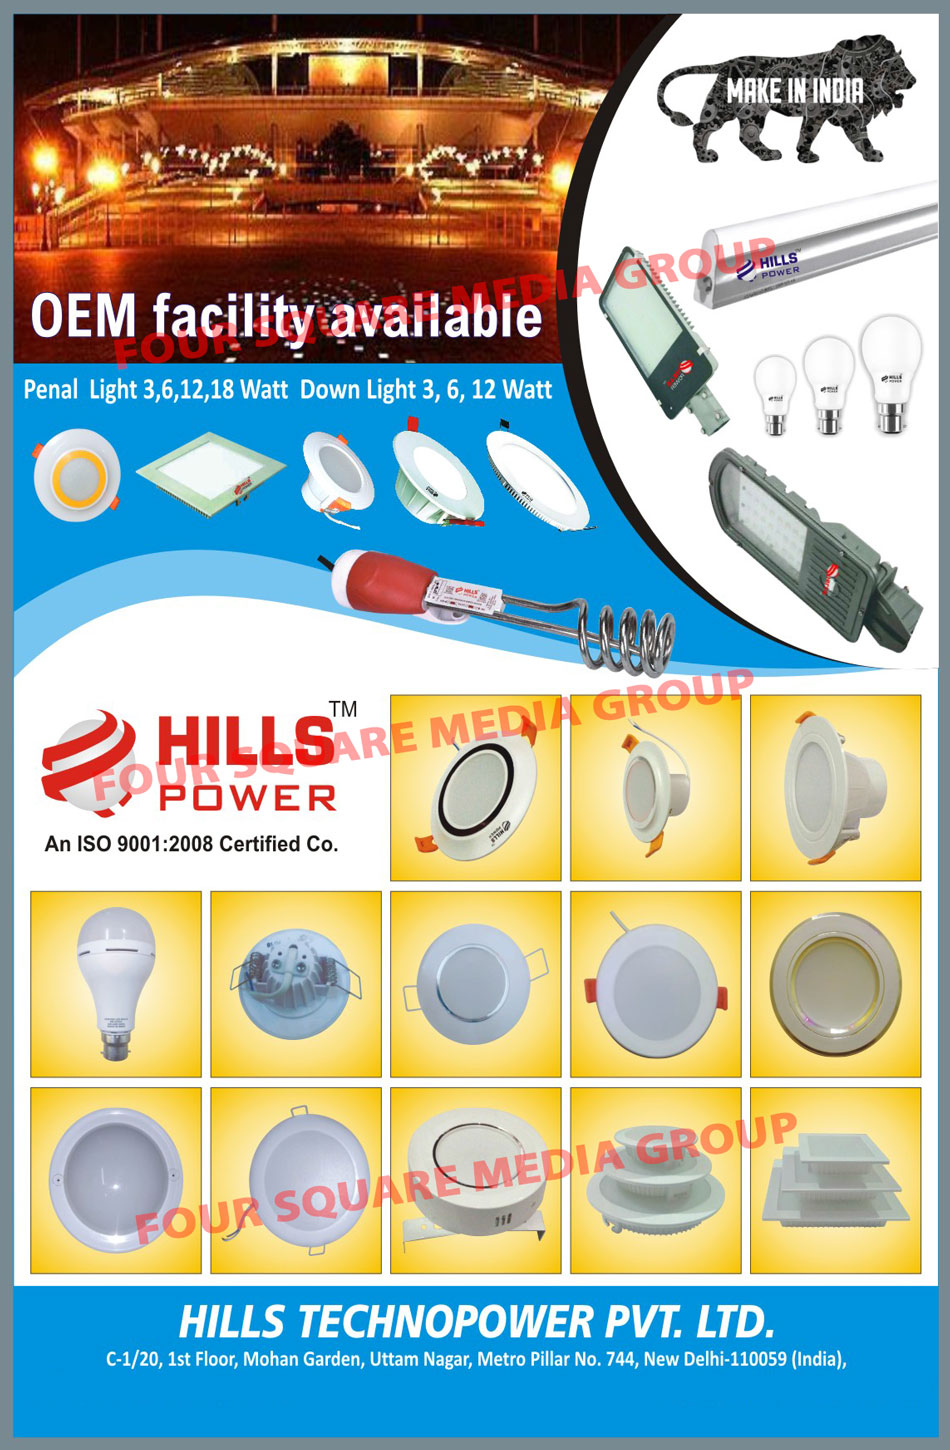 Led Lights, Led Panel Lights, Led Down Lights, Ceiling Fans, Exhaust Fans, Table Fans, Press, Iron